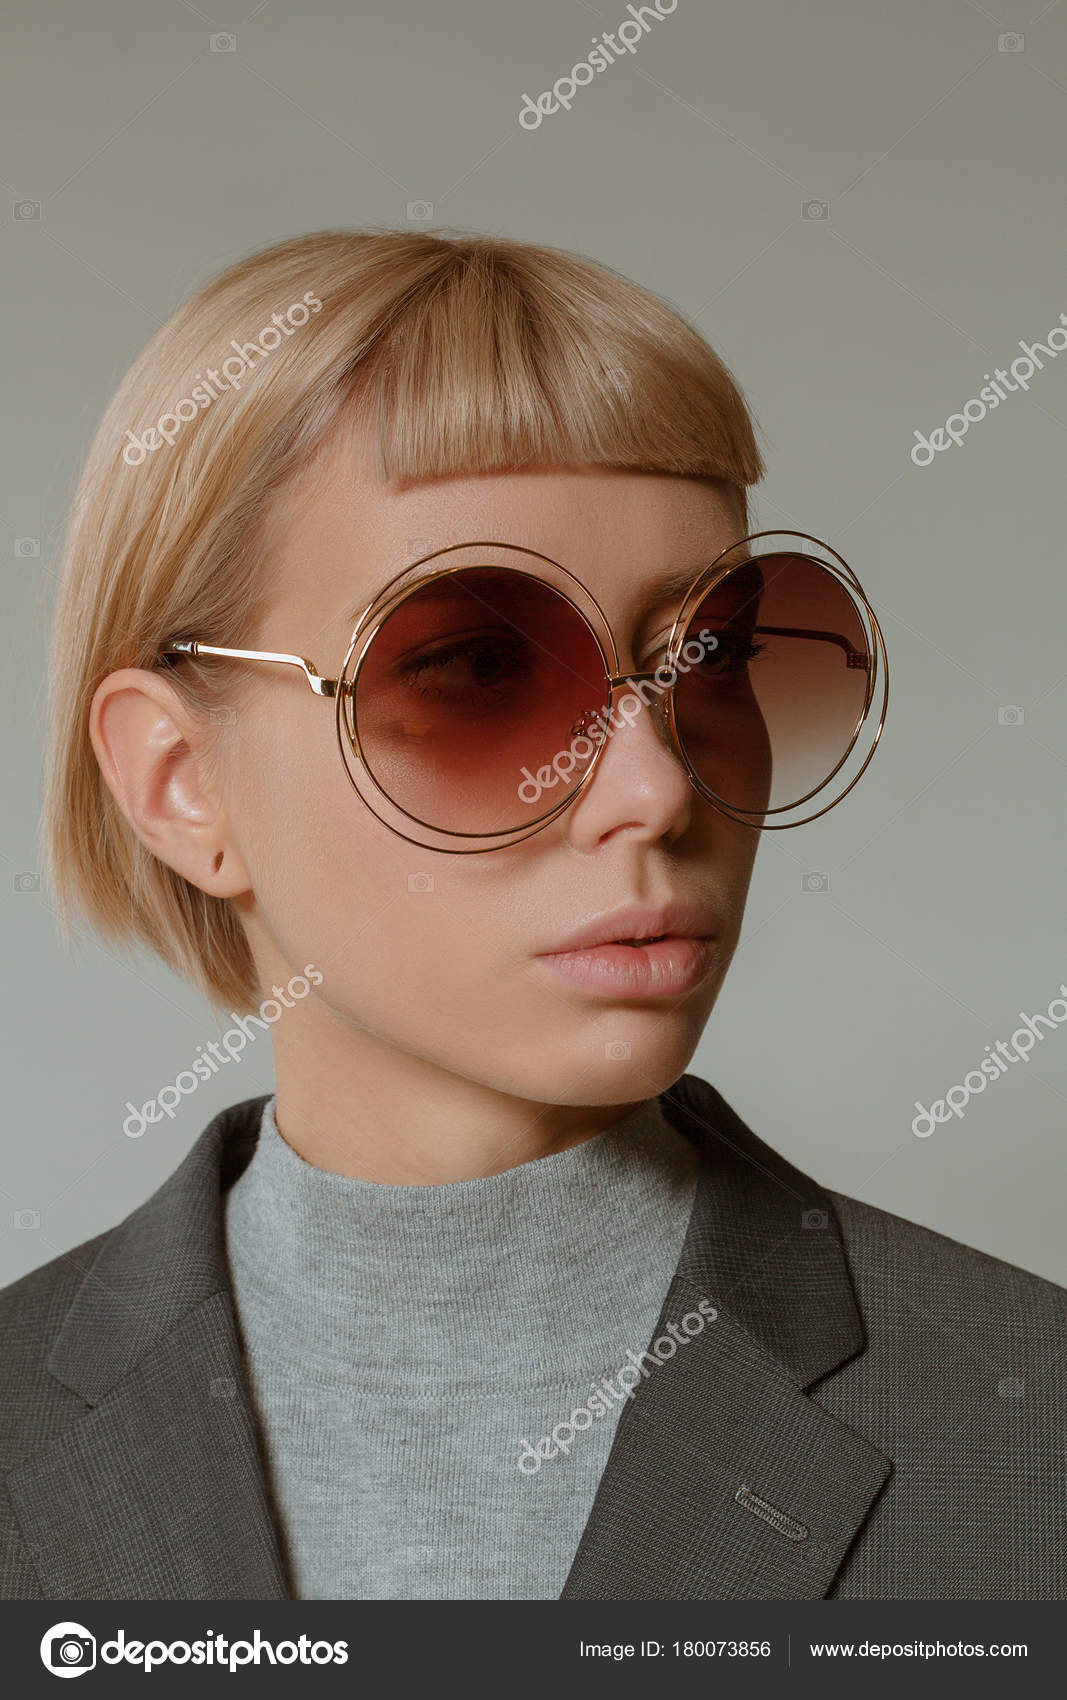 d600f85d3aae Blonde Girl Short Hair Style Fashion Glasses — Stock Photo ...